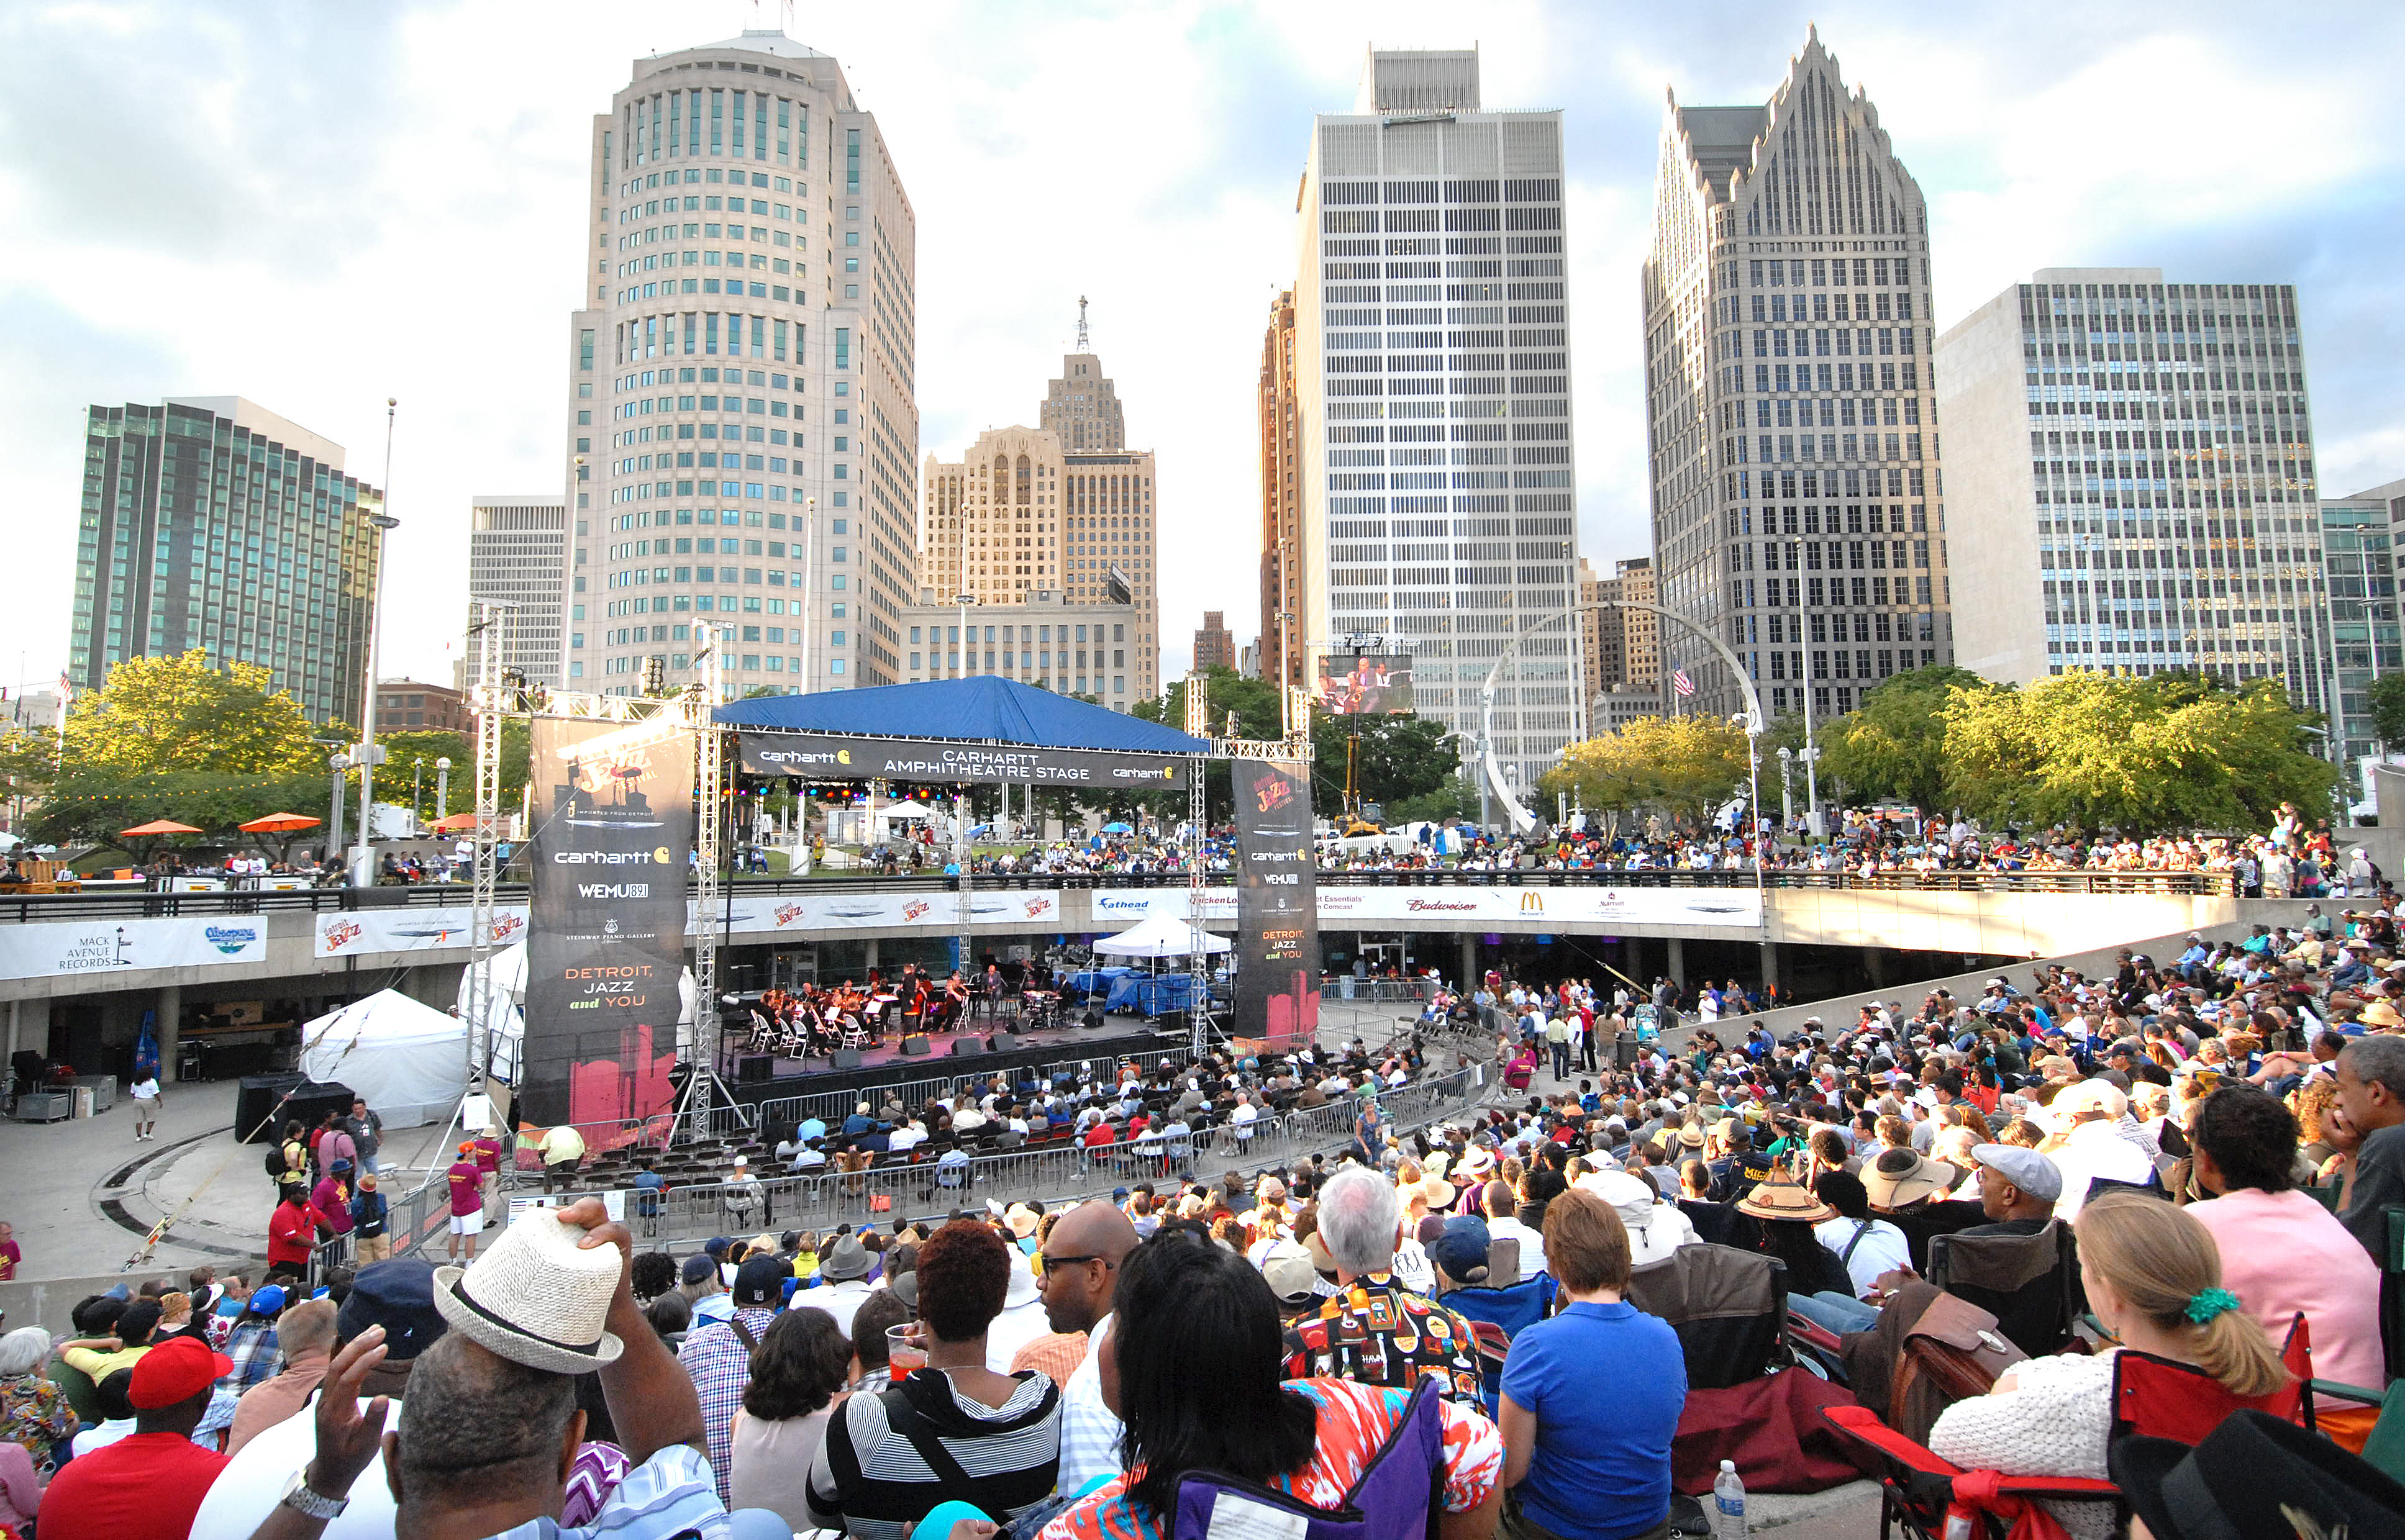 A huge crowd sits around a depressed amphitheater with a row of tall skyscrapers in the background.